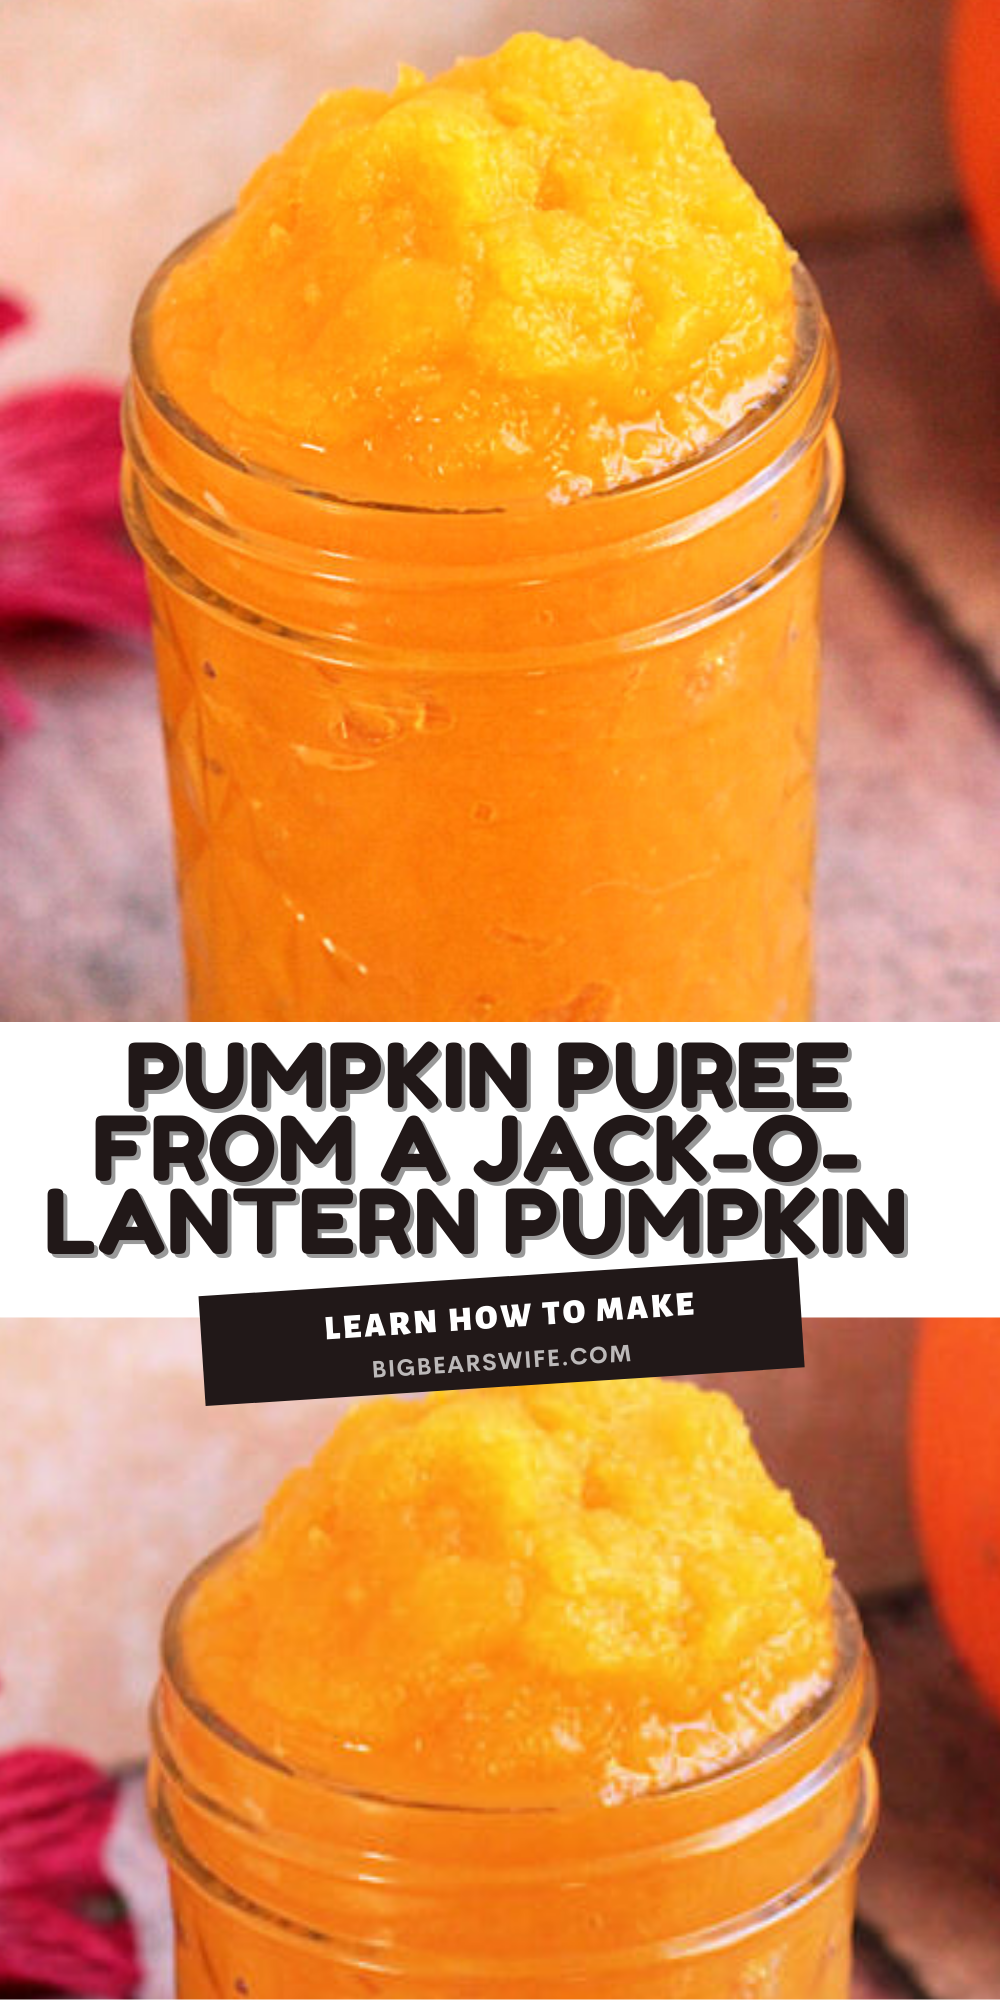 Want to make some homemade Pumpkin Desserts? Turn those un-carved pumpkins into homemade pumpkin puree! Perfect for Pumpkin Pies, Pumpkin Bread, Pumpkin Cookies and more! This post will teach you how to make Homemade Pumpkin Puree from Jack-O-Lantern style pumpkins. via @bigbearswife